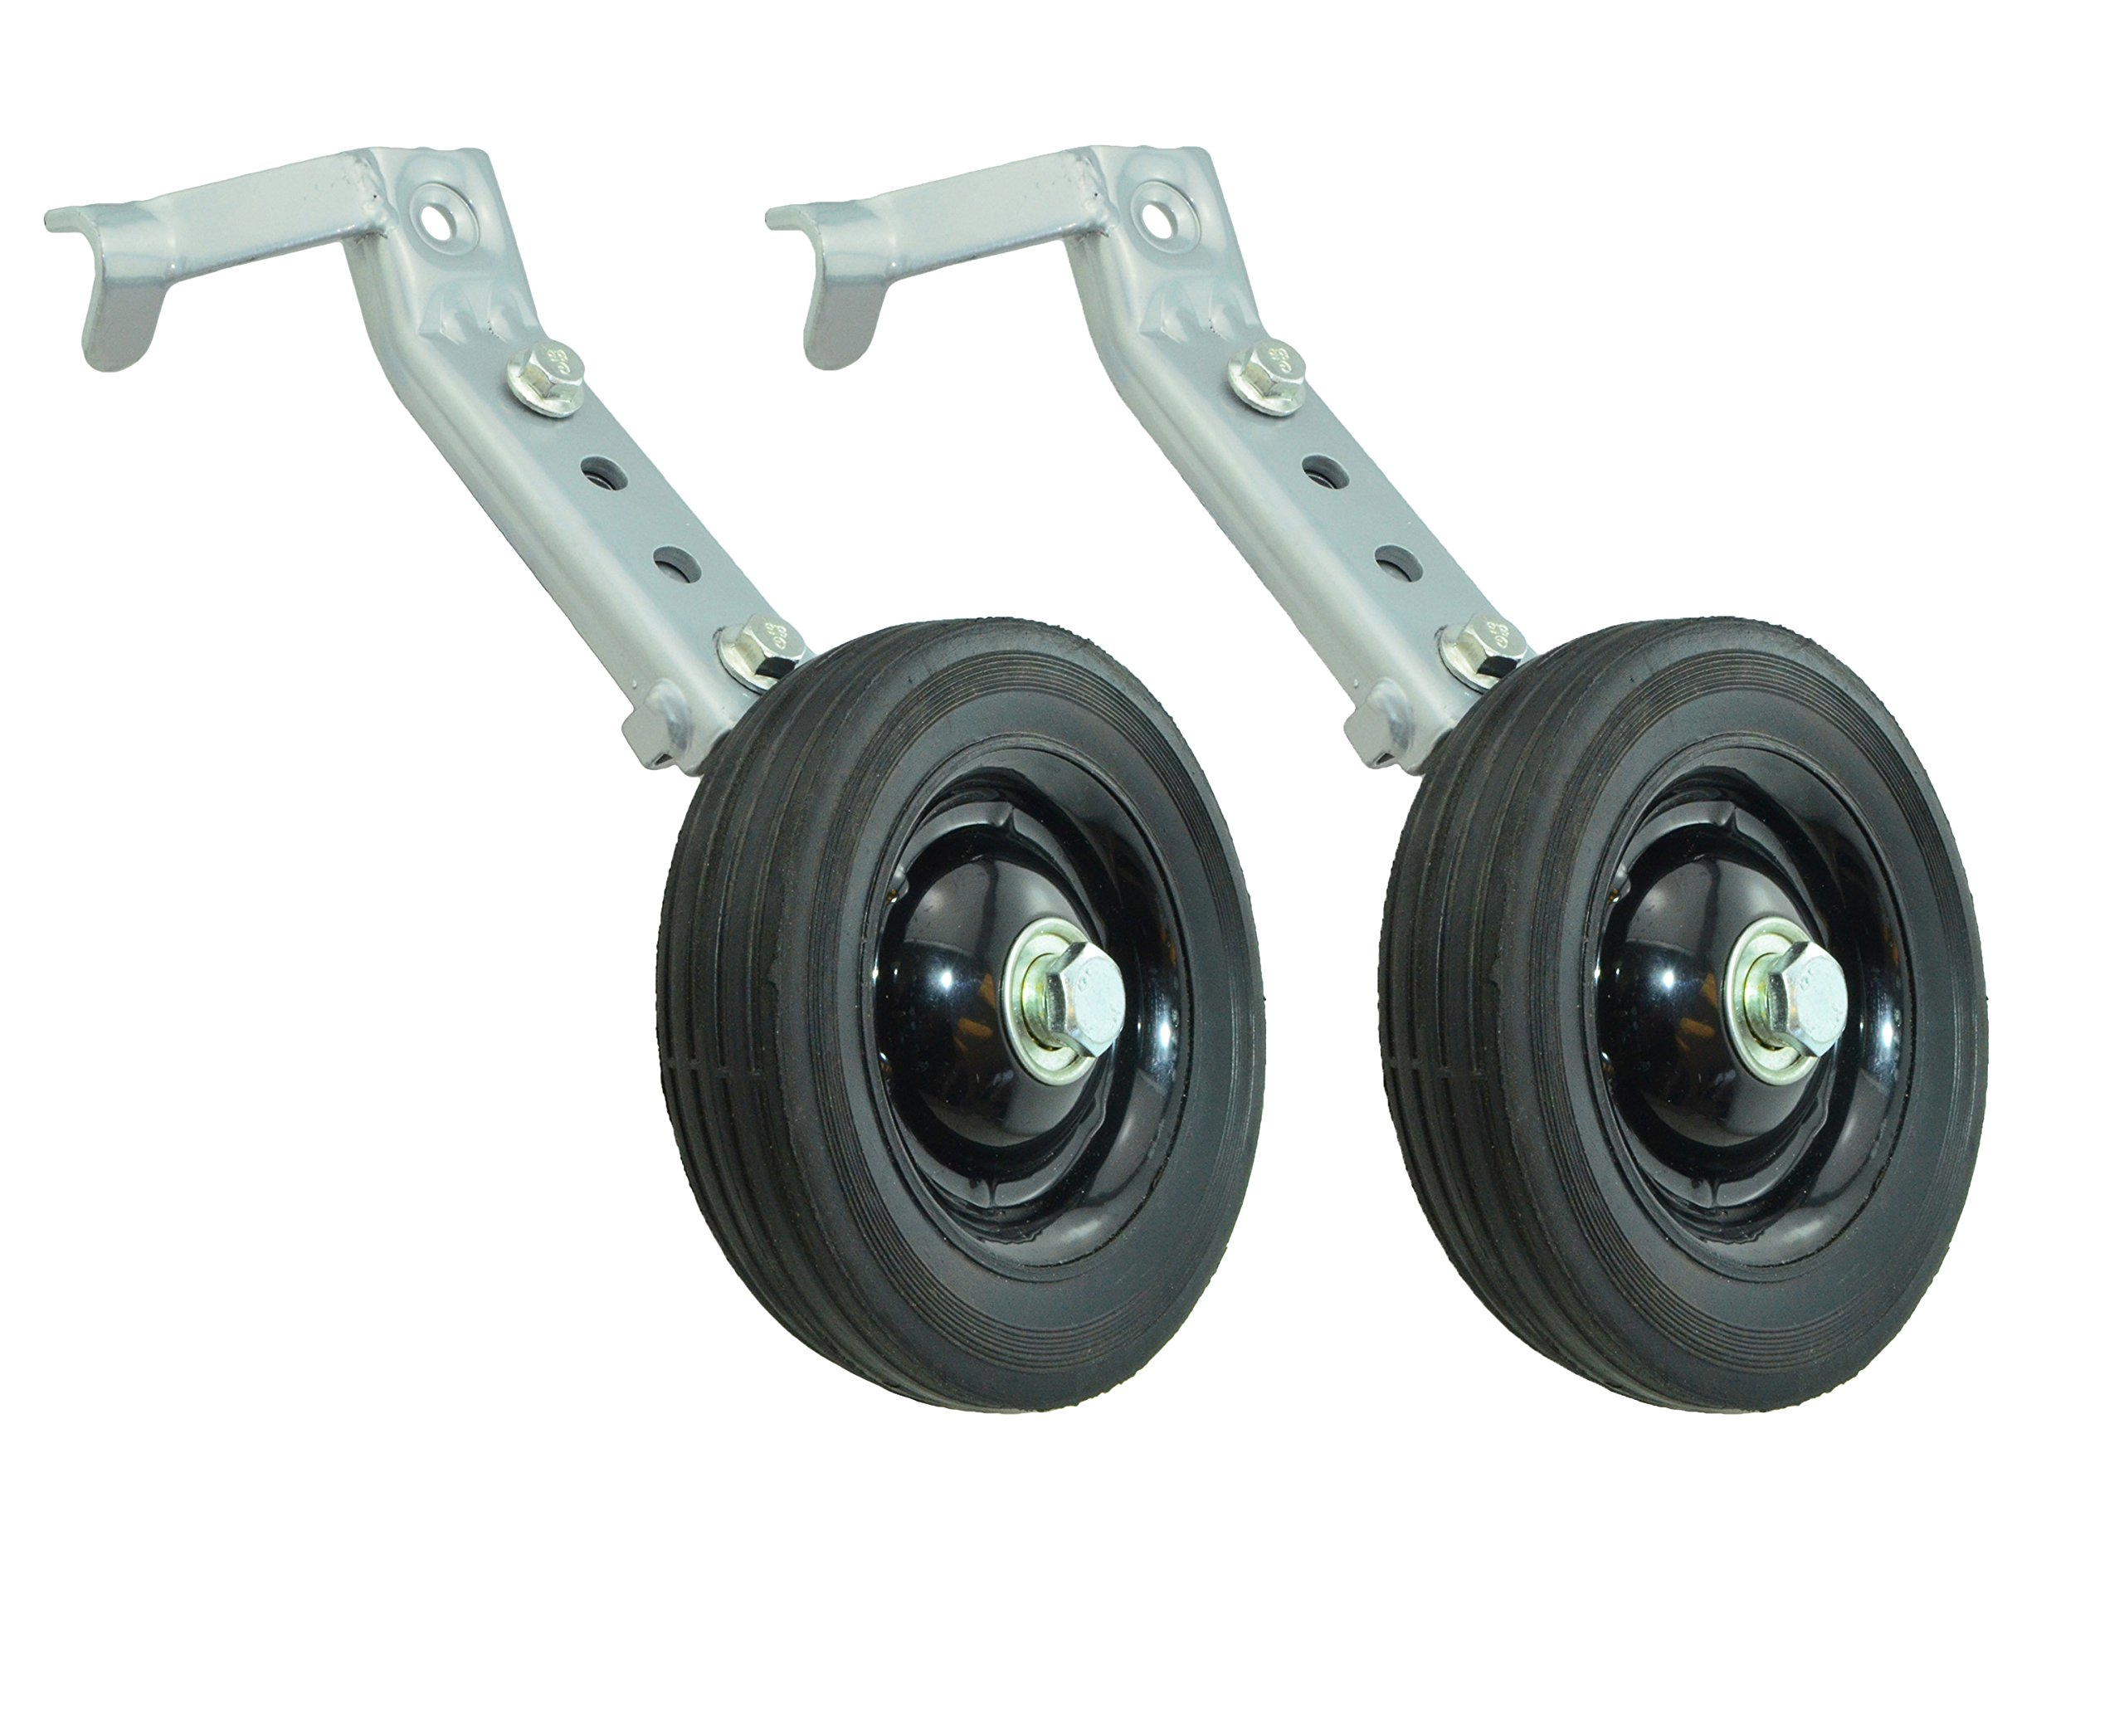 """Lumintrail Heavy Duty Adjustable Bike Training Wheels for 20"""" to 26"""" Bicycles by Lumintrail (Image #6)"""